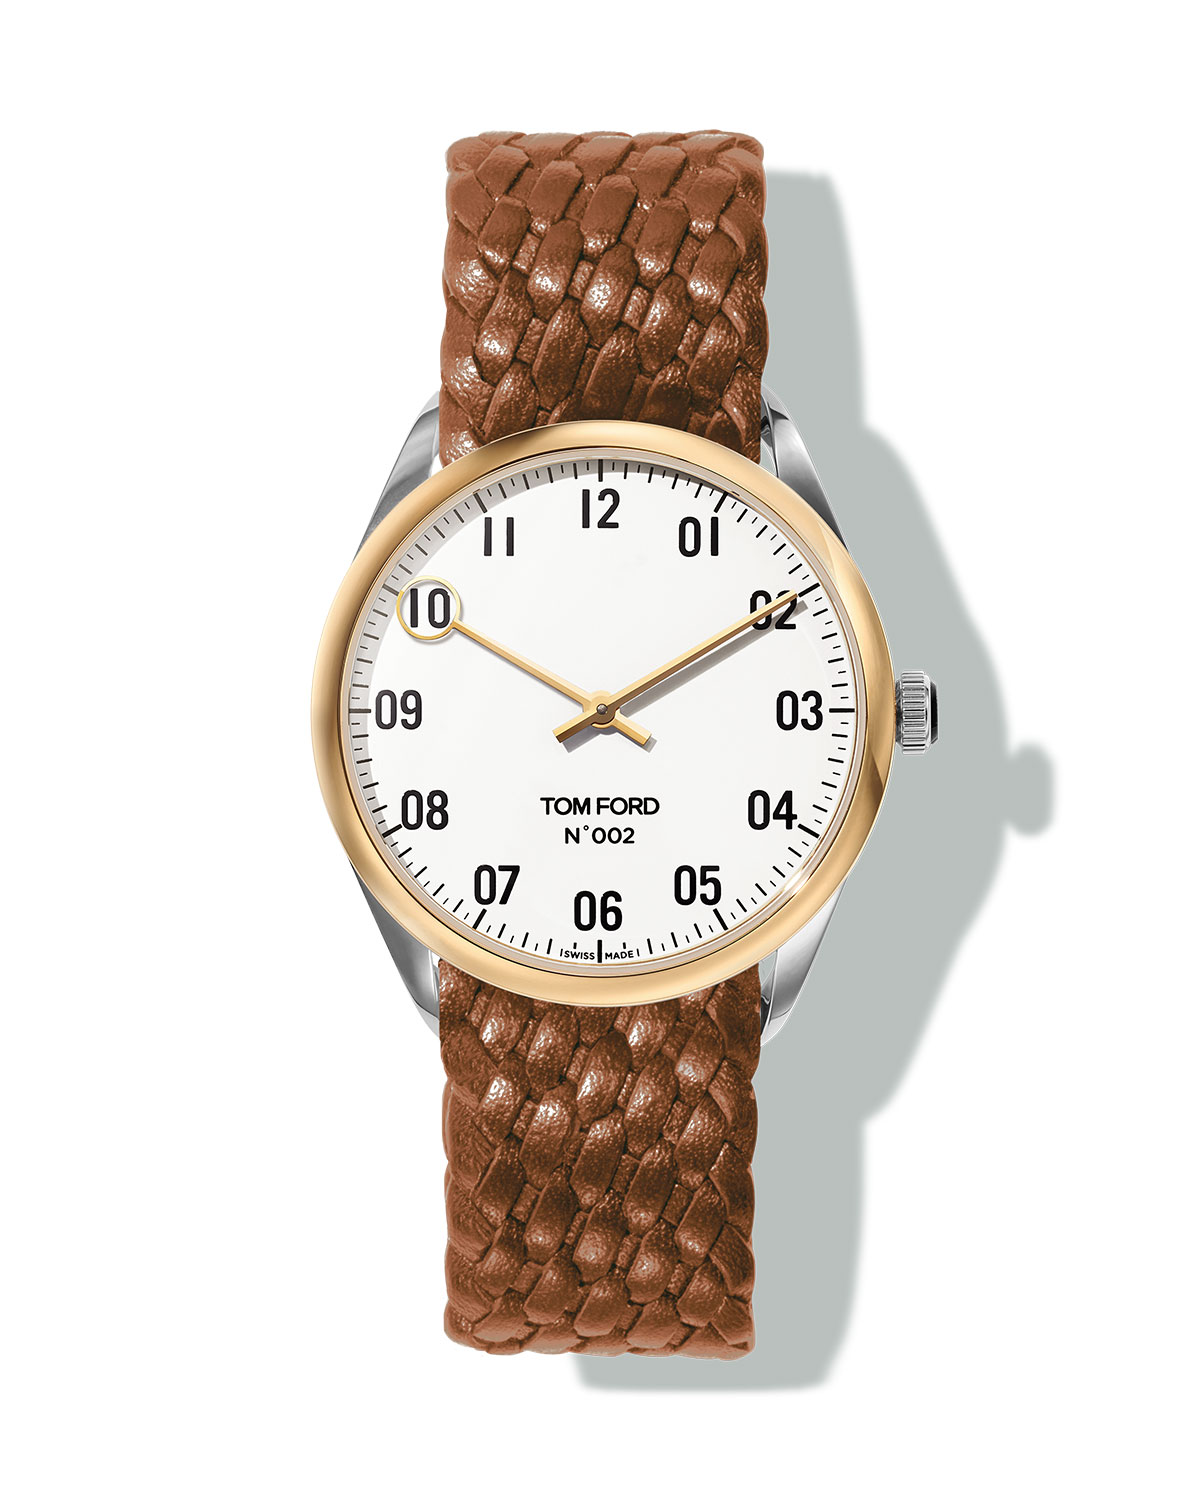 TOM FORD TIMEPIECES N.002 38mm Round Leather Watch